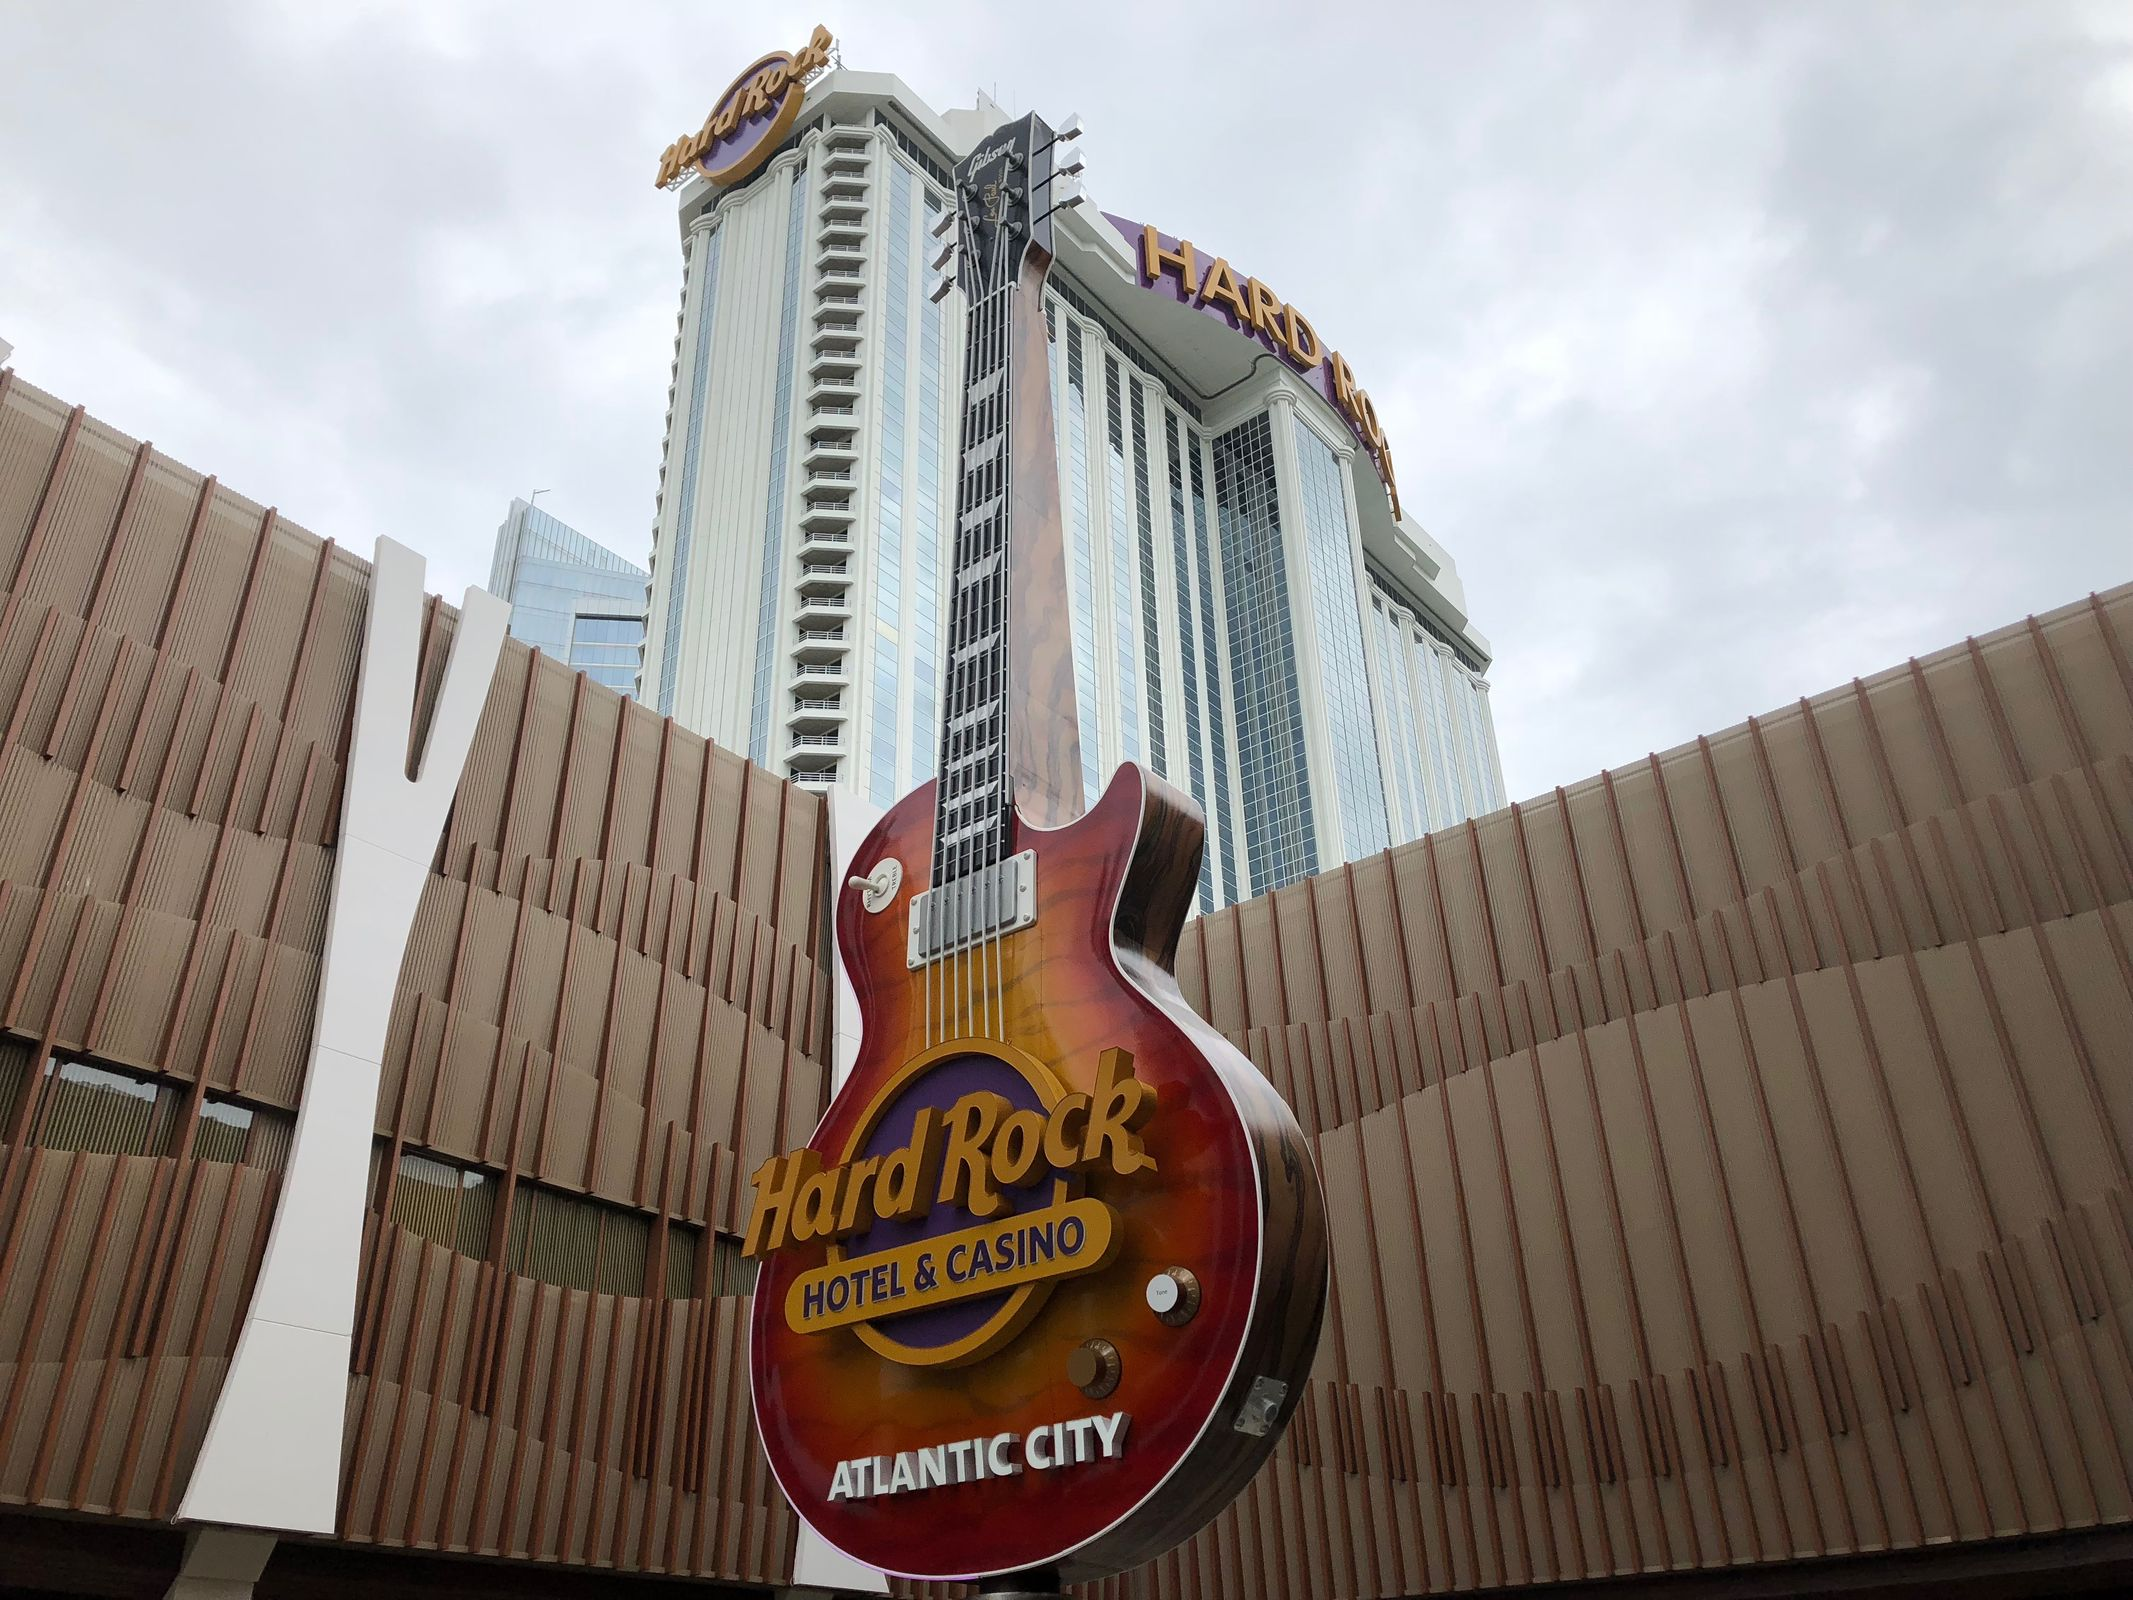 The Hard Rock Hotel & Casino on June 27, 2018, toward a planned June 28 opening. It is located on the site of the the former Taj Mahal, which closed in 2016 after a labor dispute with billionaire owner Carl Icahn. The now-president Trump hailed the business as the Eighth wonder of the world when it opened in 1990. Trump´s name was removed from the property shortly after his 2017 inauguration, according to a court filing, because Icahn failed to maintain the iconic and invaluable Trump Entertainment brand.